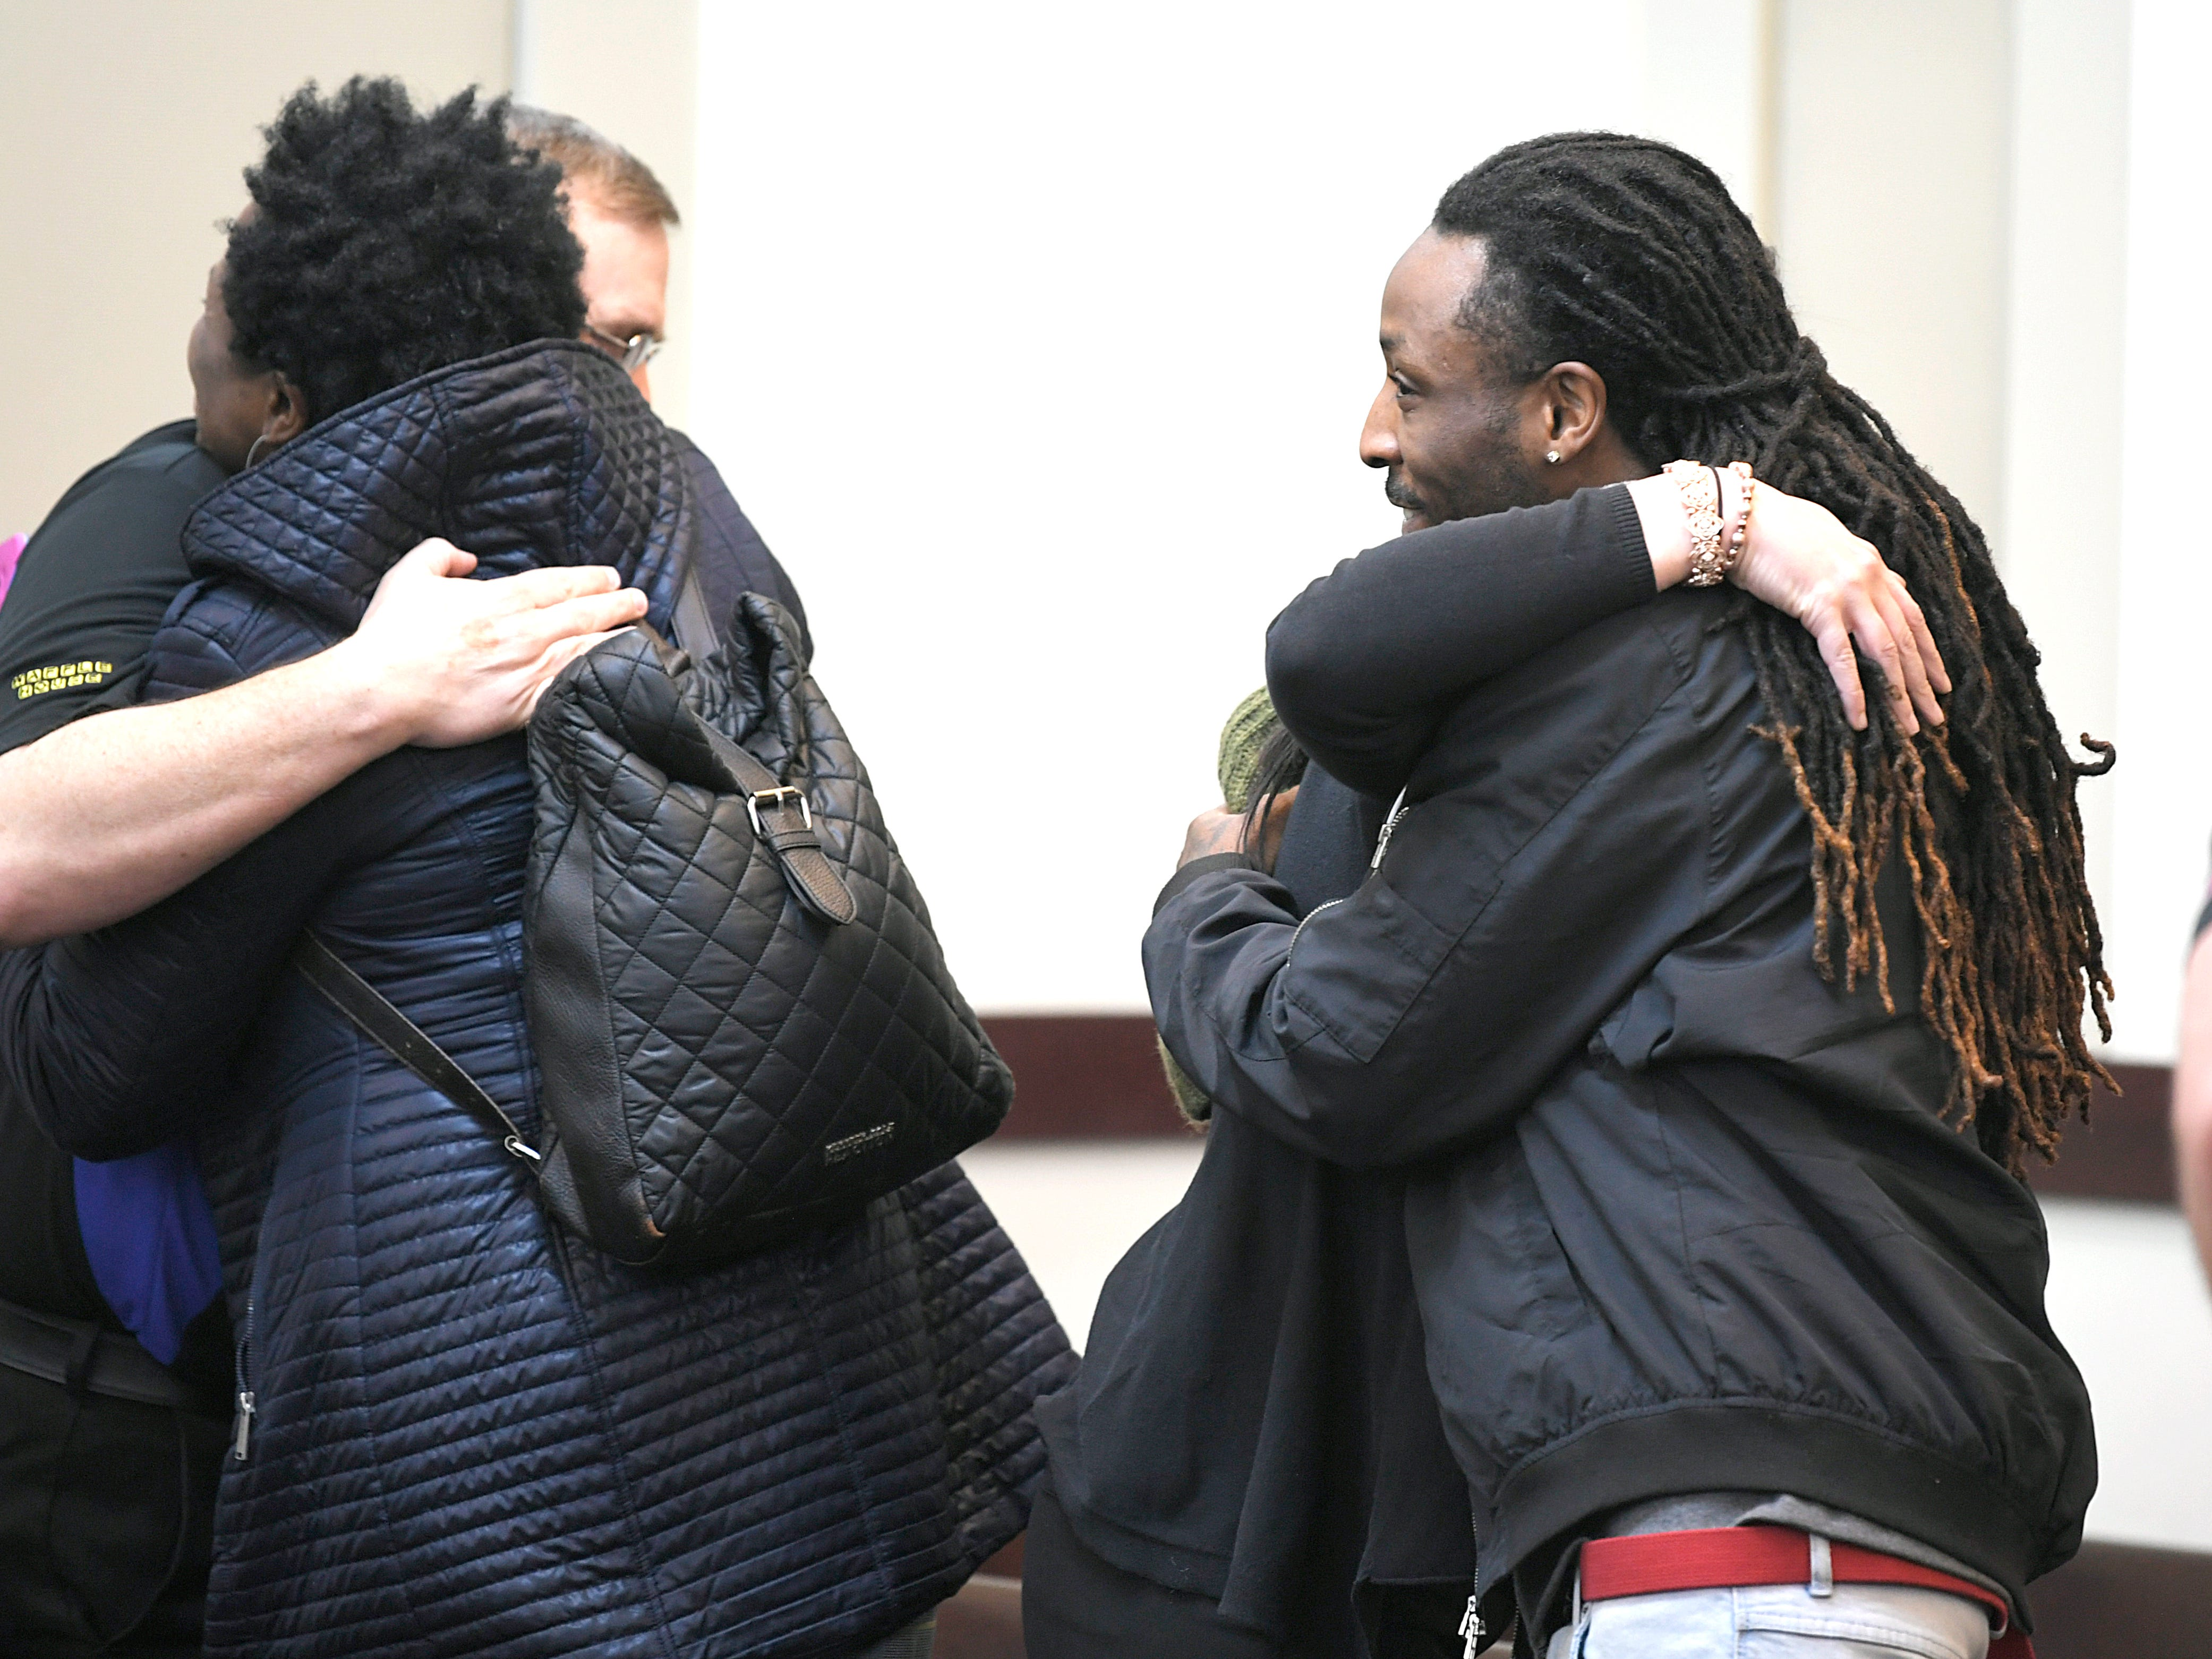 Waffle House employees hugs family members of Waffle House victims before a hearing on Waffle House shooting suspect Travis Reinking in Judge Mark Fishburn's courtroom in Nashville on Wednesday, Feb. 13, 2019.